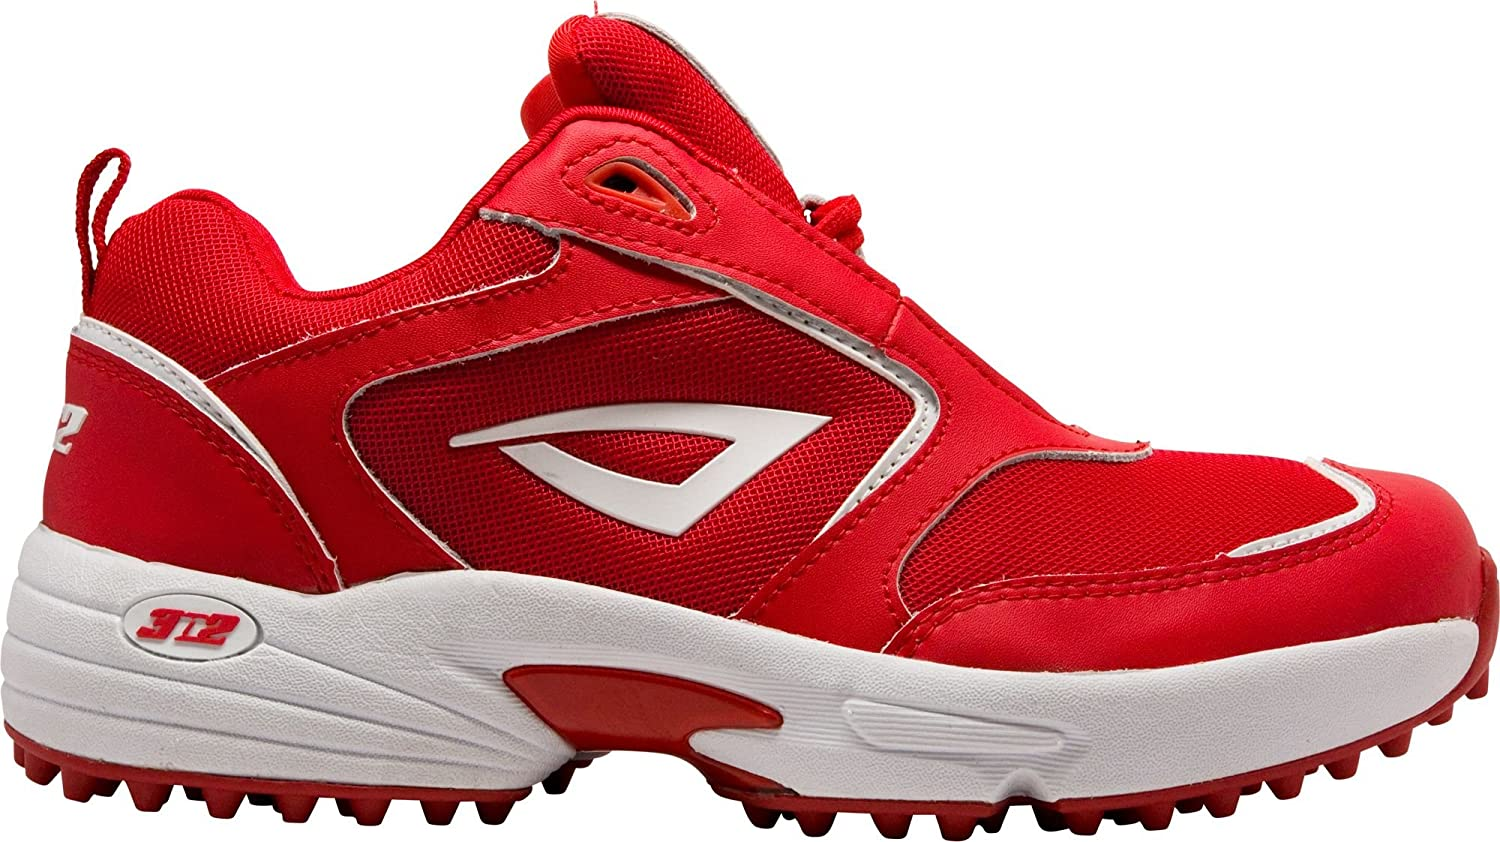 3N2 スポーツ 野球 シューズ 3N2 Men's MOFO Turf Mid Baseball Trainer RedWhite [並行輸入品] B072MNH7W6 6